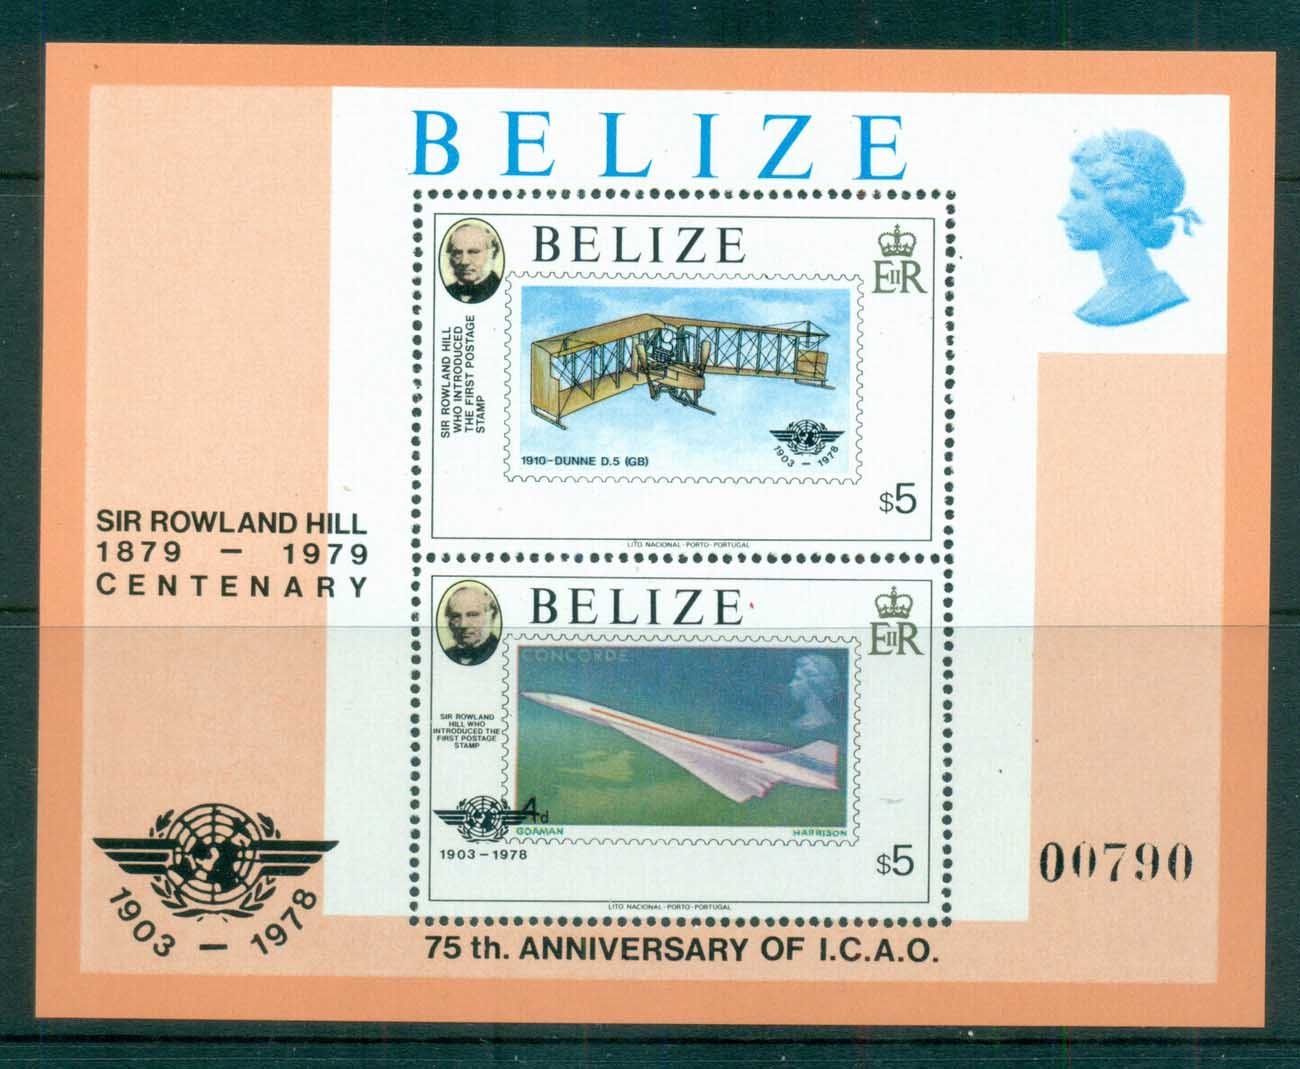 Belize 1979 Powered Flight 75th Anniv., Rowland Hill $5 MS MUH